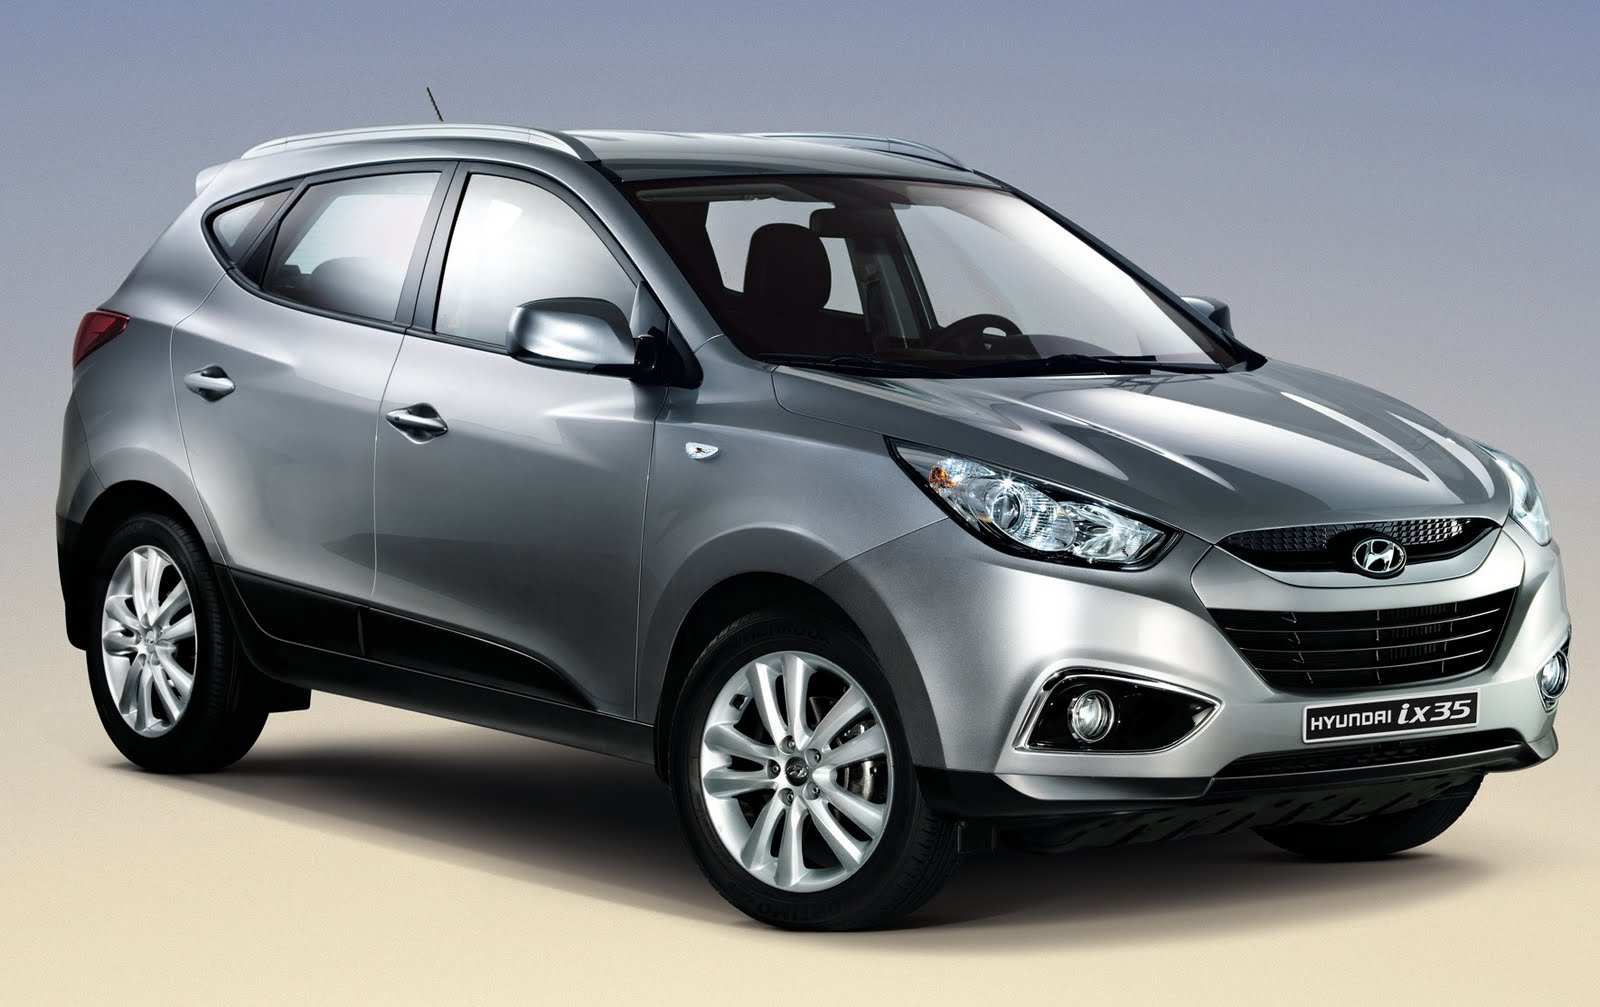 Hyundai ix photo - 1